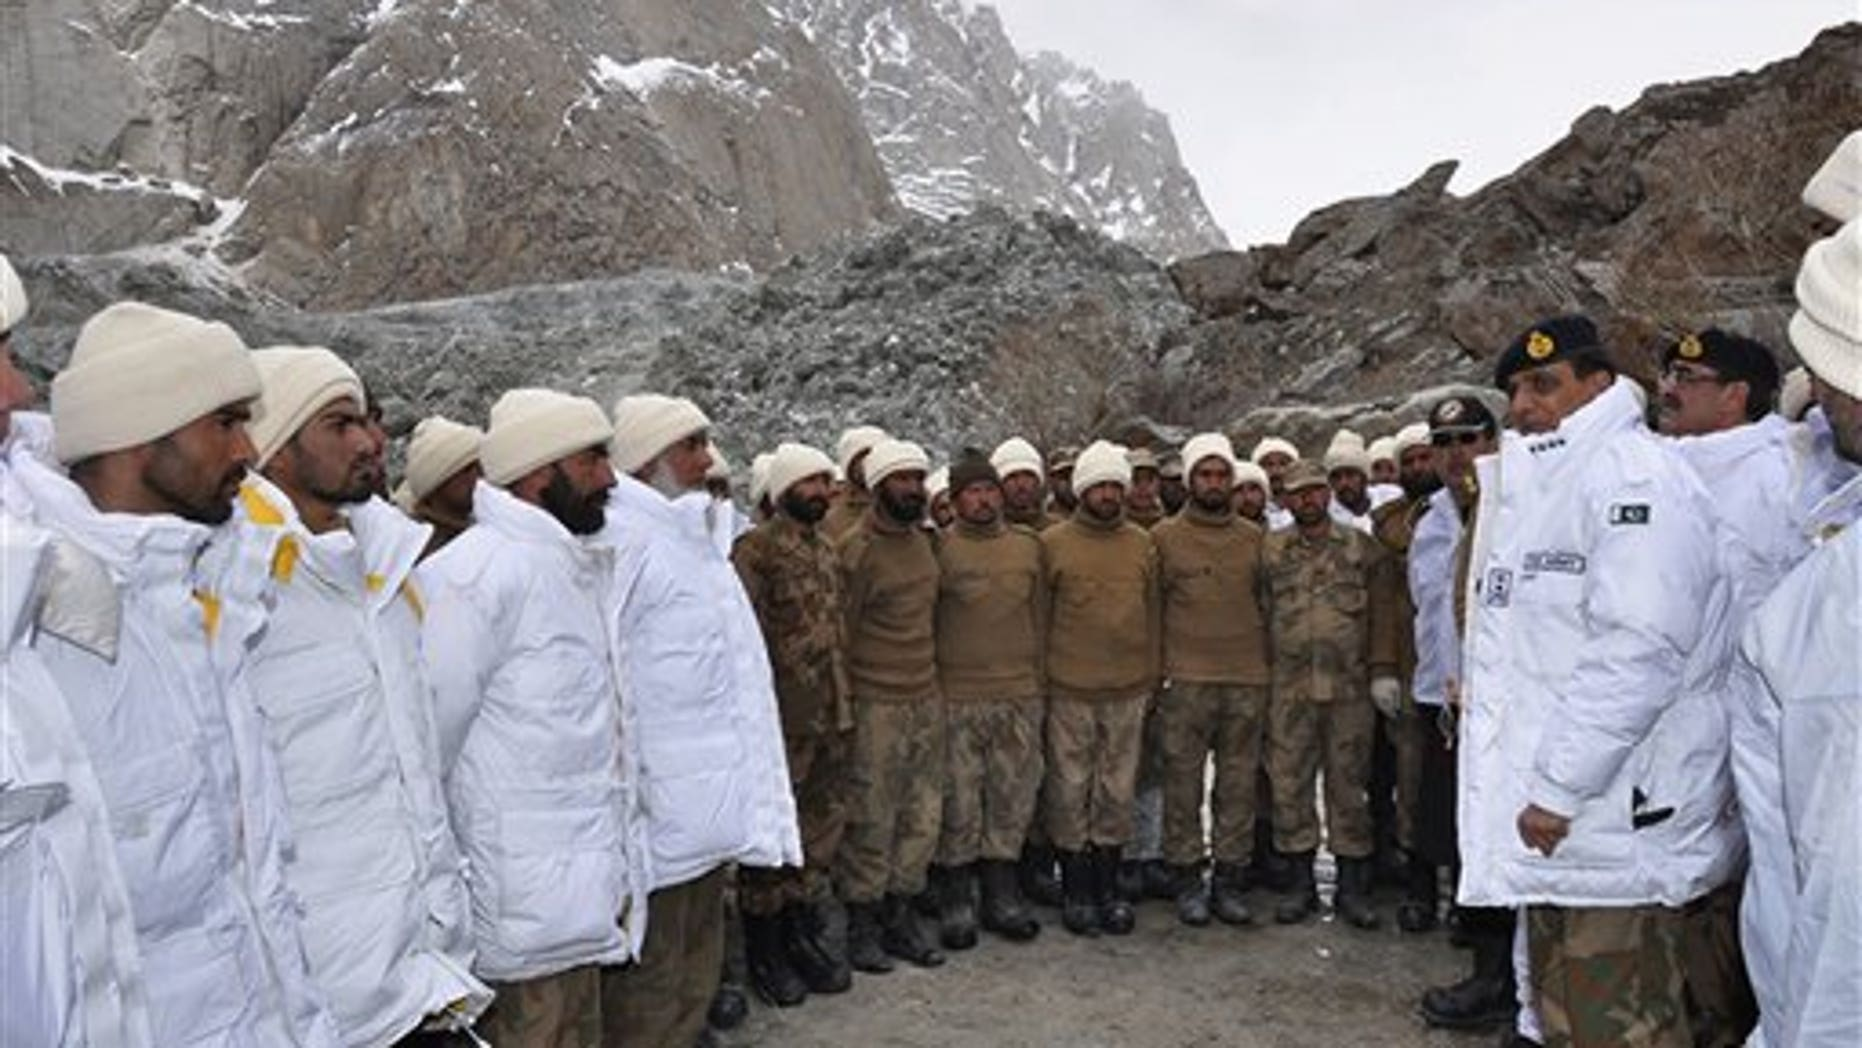 April 8, 2012: In this photo released by Inter Services Public Relations, Pakistan's army chief Gen. Ashfaq Parvez Kayani, second right, talks to soldiers during his visit to avalanche incident site in Siachen, in northern Pakistan.